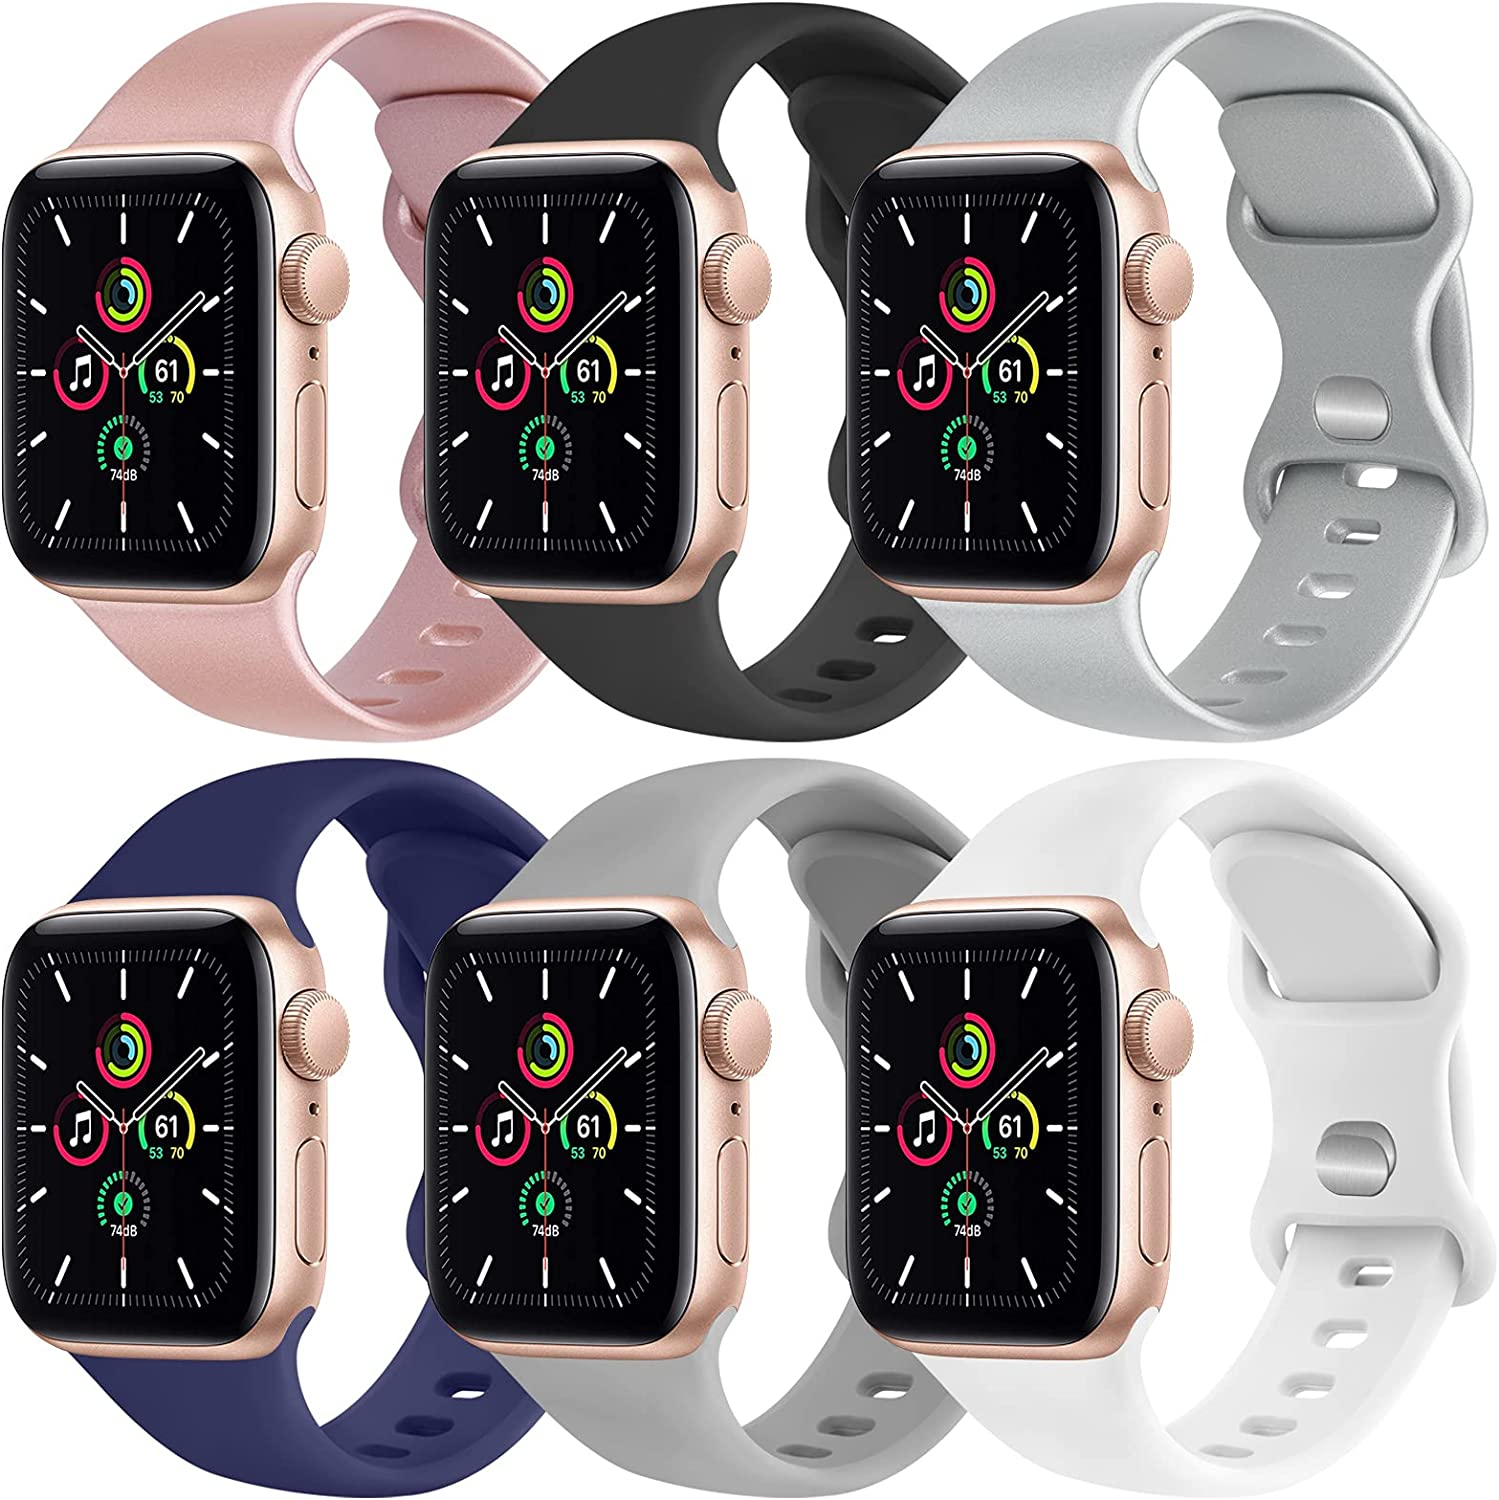 [6 Pack] Yisica Silicone Bands Compatible with Apple Watch Band 38mm 40mm for Women Men, Sport Wristbands for iWatch Series SE/6/5/4/3/2/1